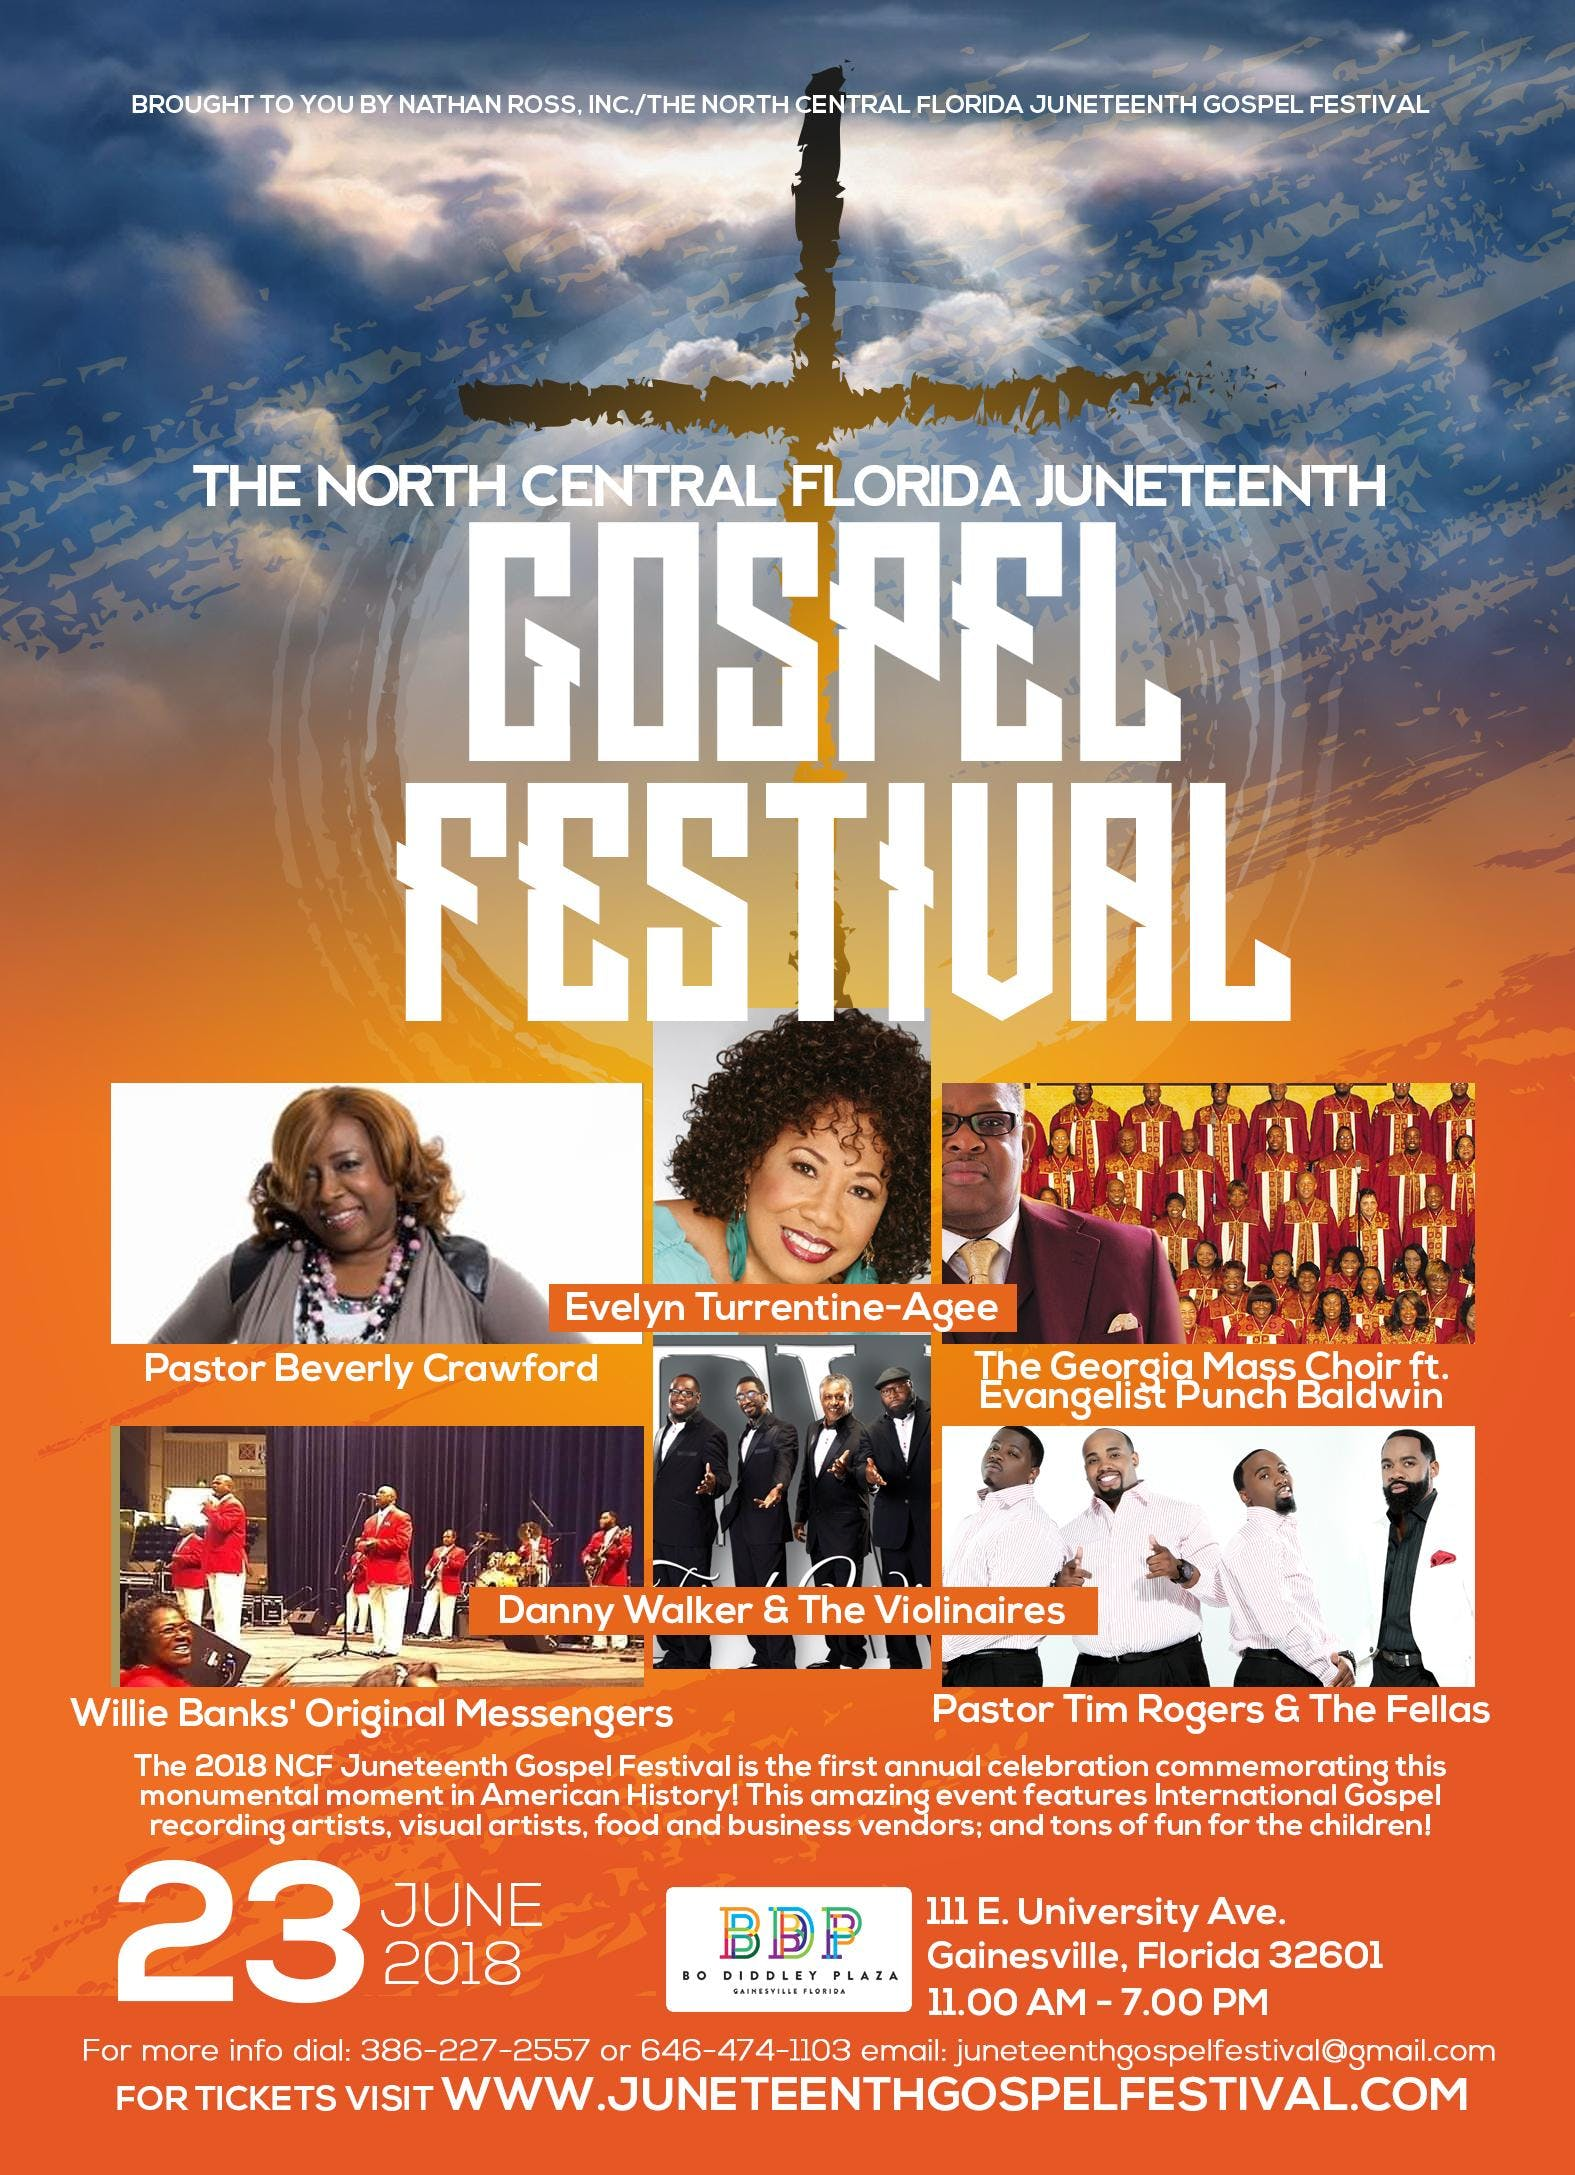 The 2018 North Central Florida Juneteenth Gos